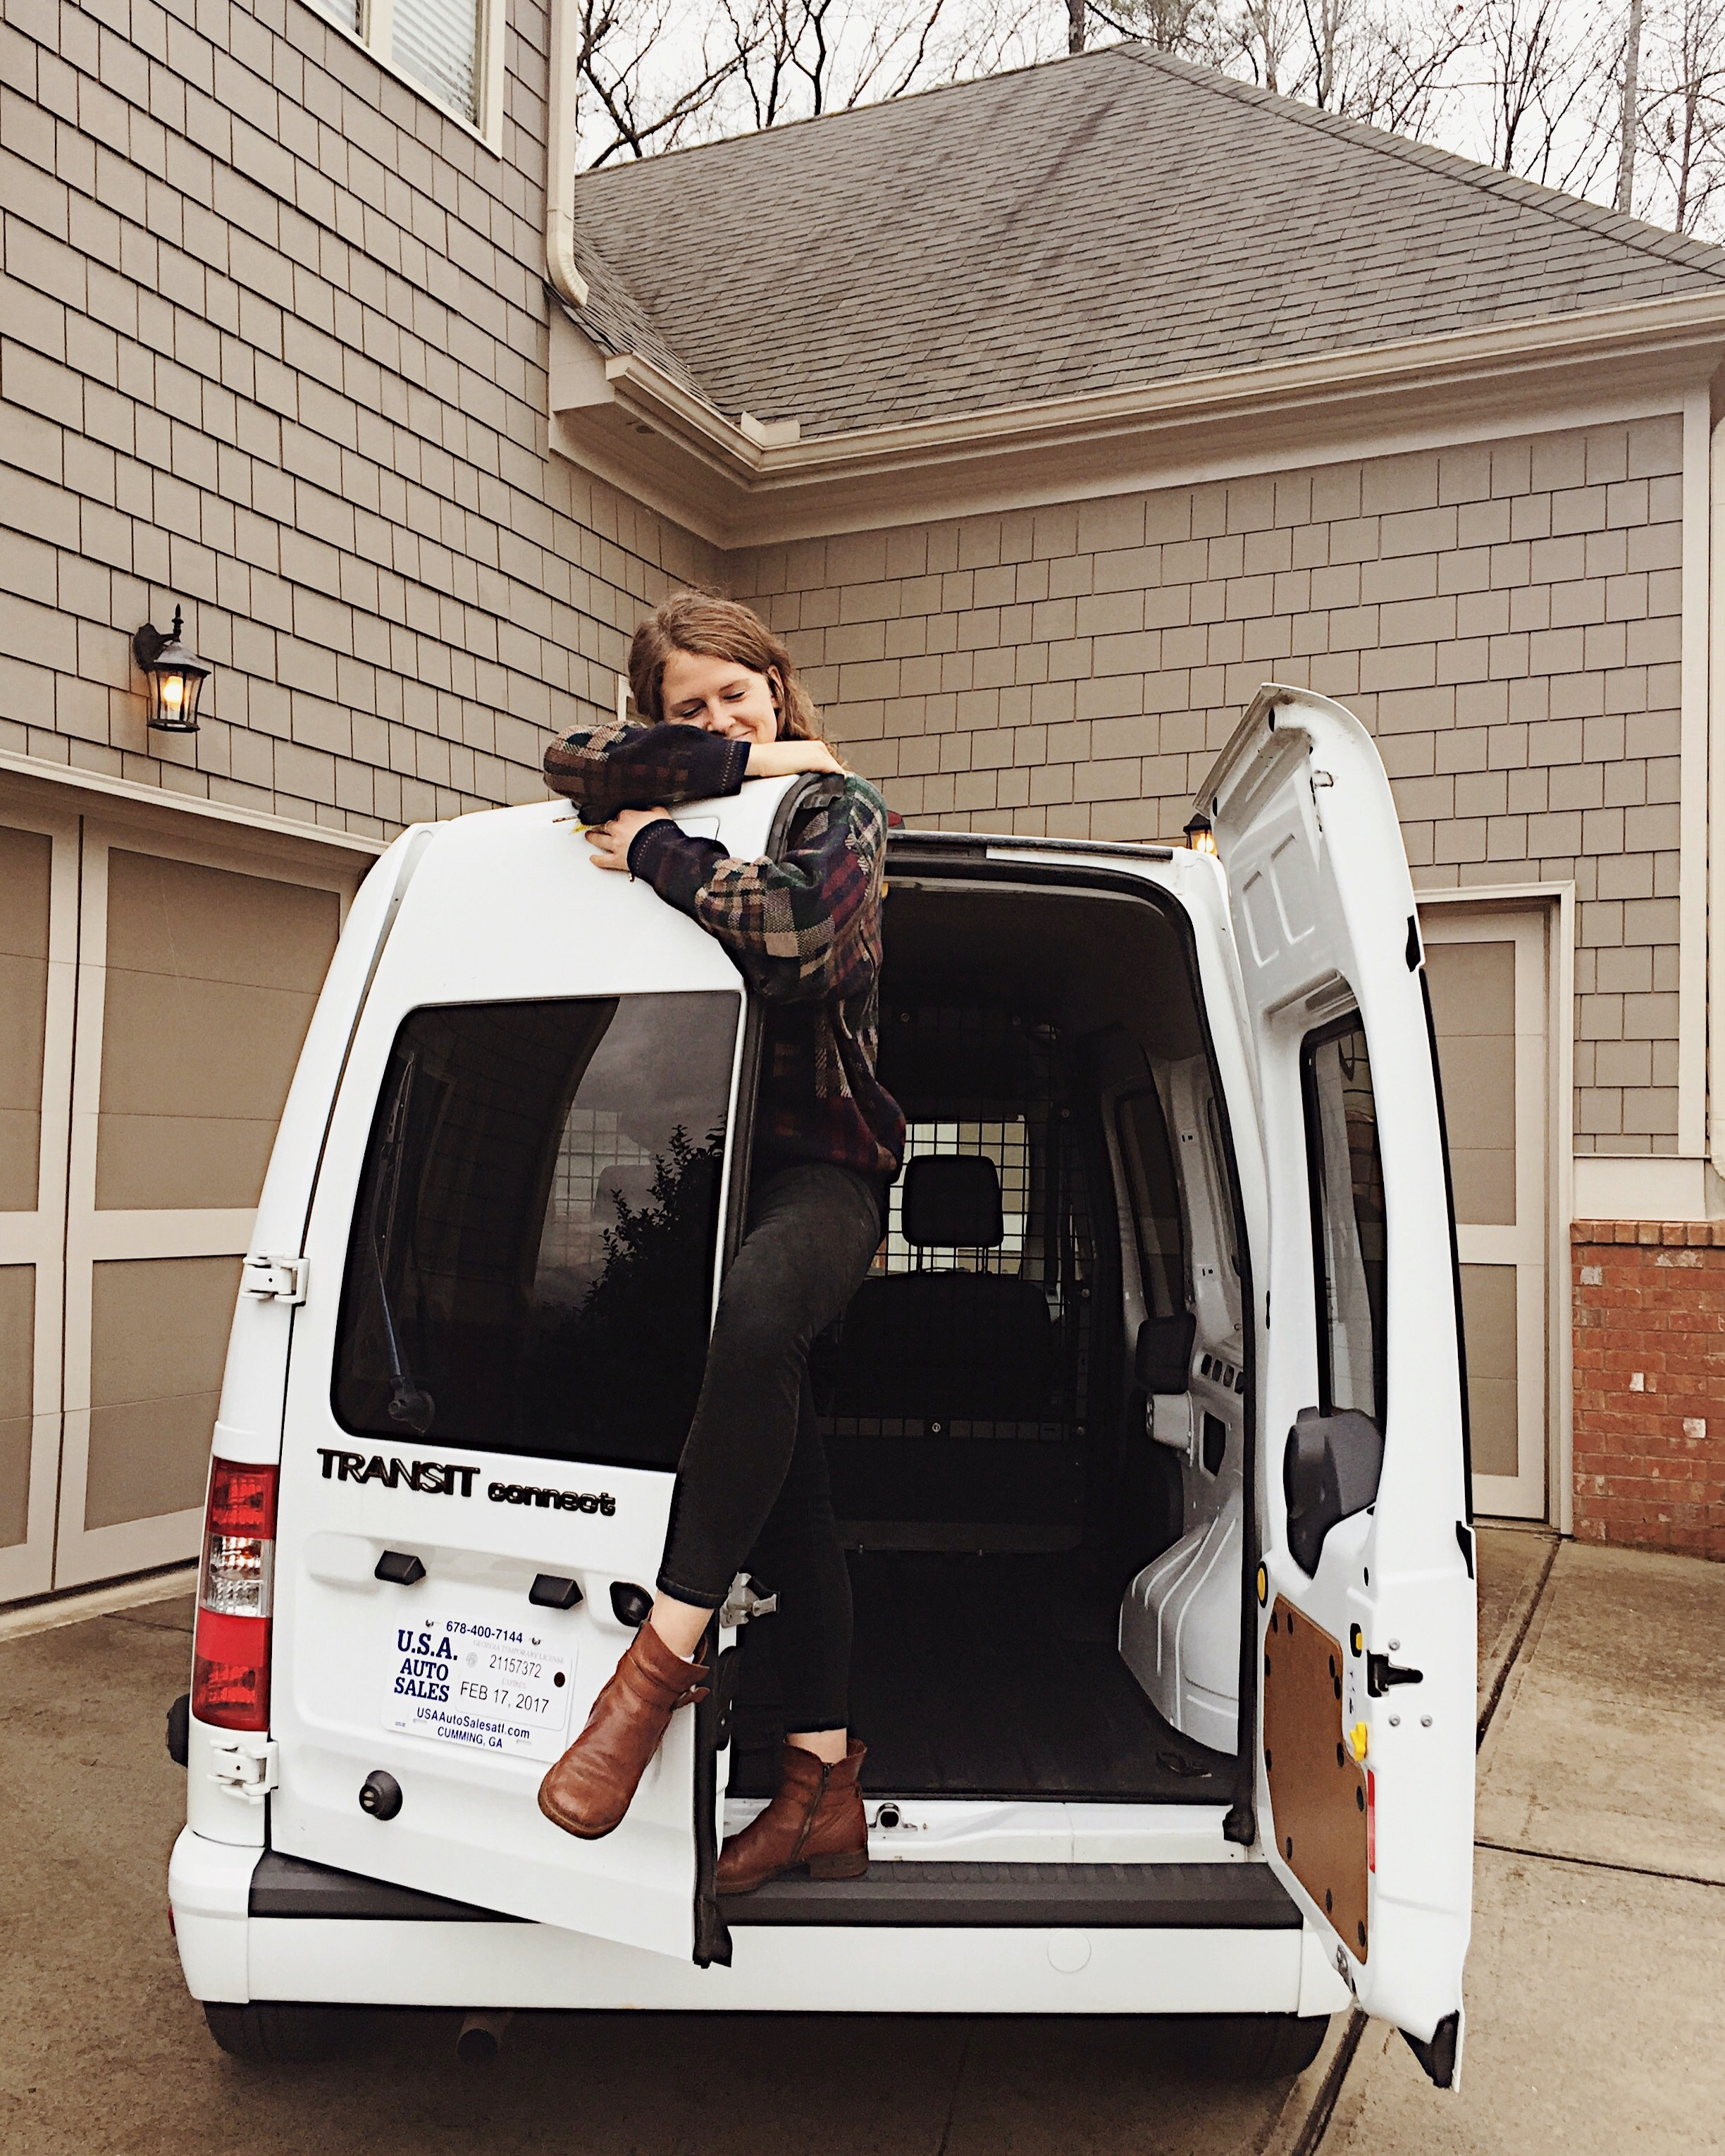 I bought a new home! Cheers to facing fear, living simply & pursuing adventure. #vanlife here I come!